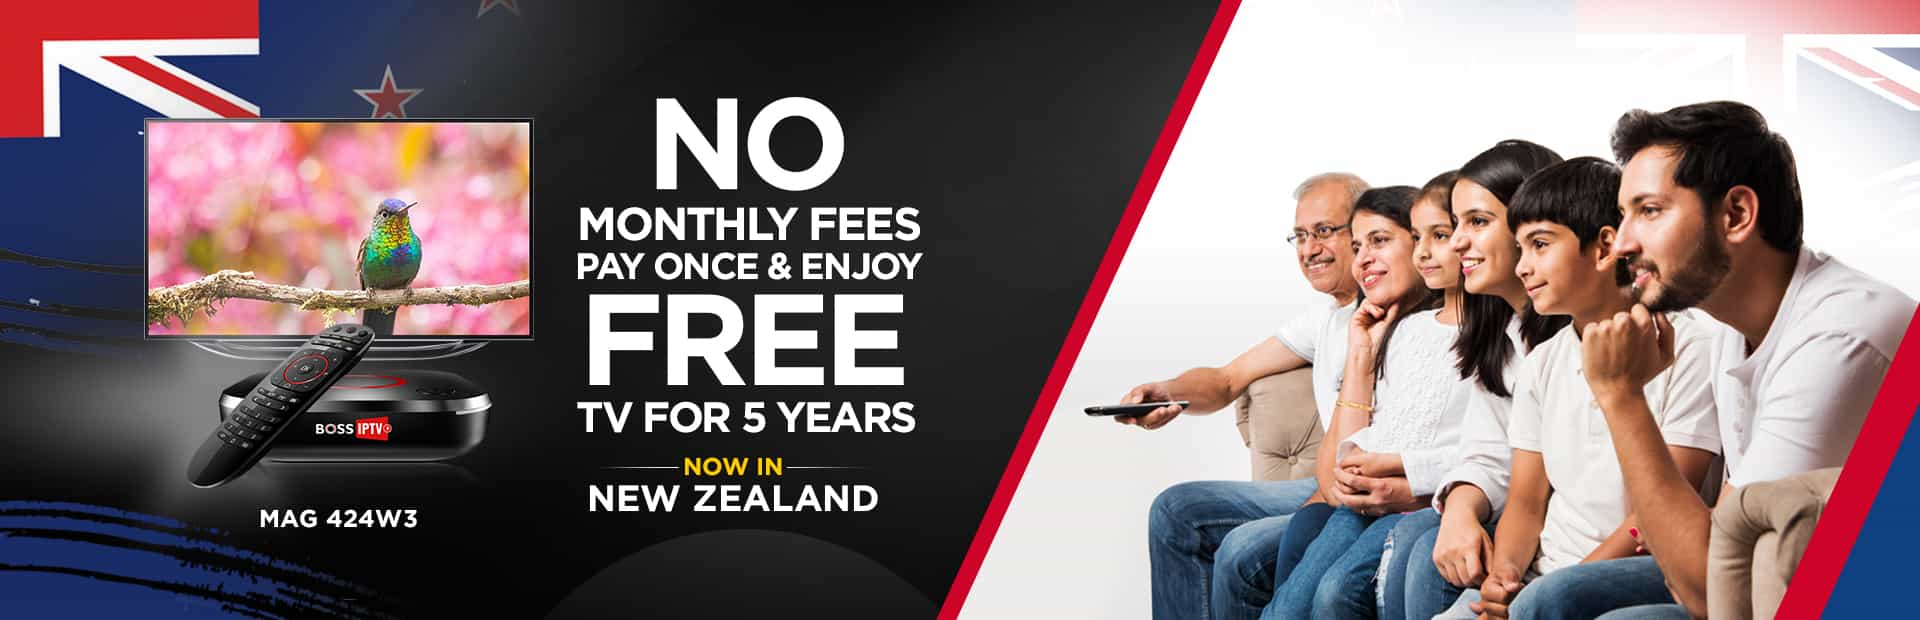 No monthly fees pay once & enjoy free TV for 5 years